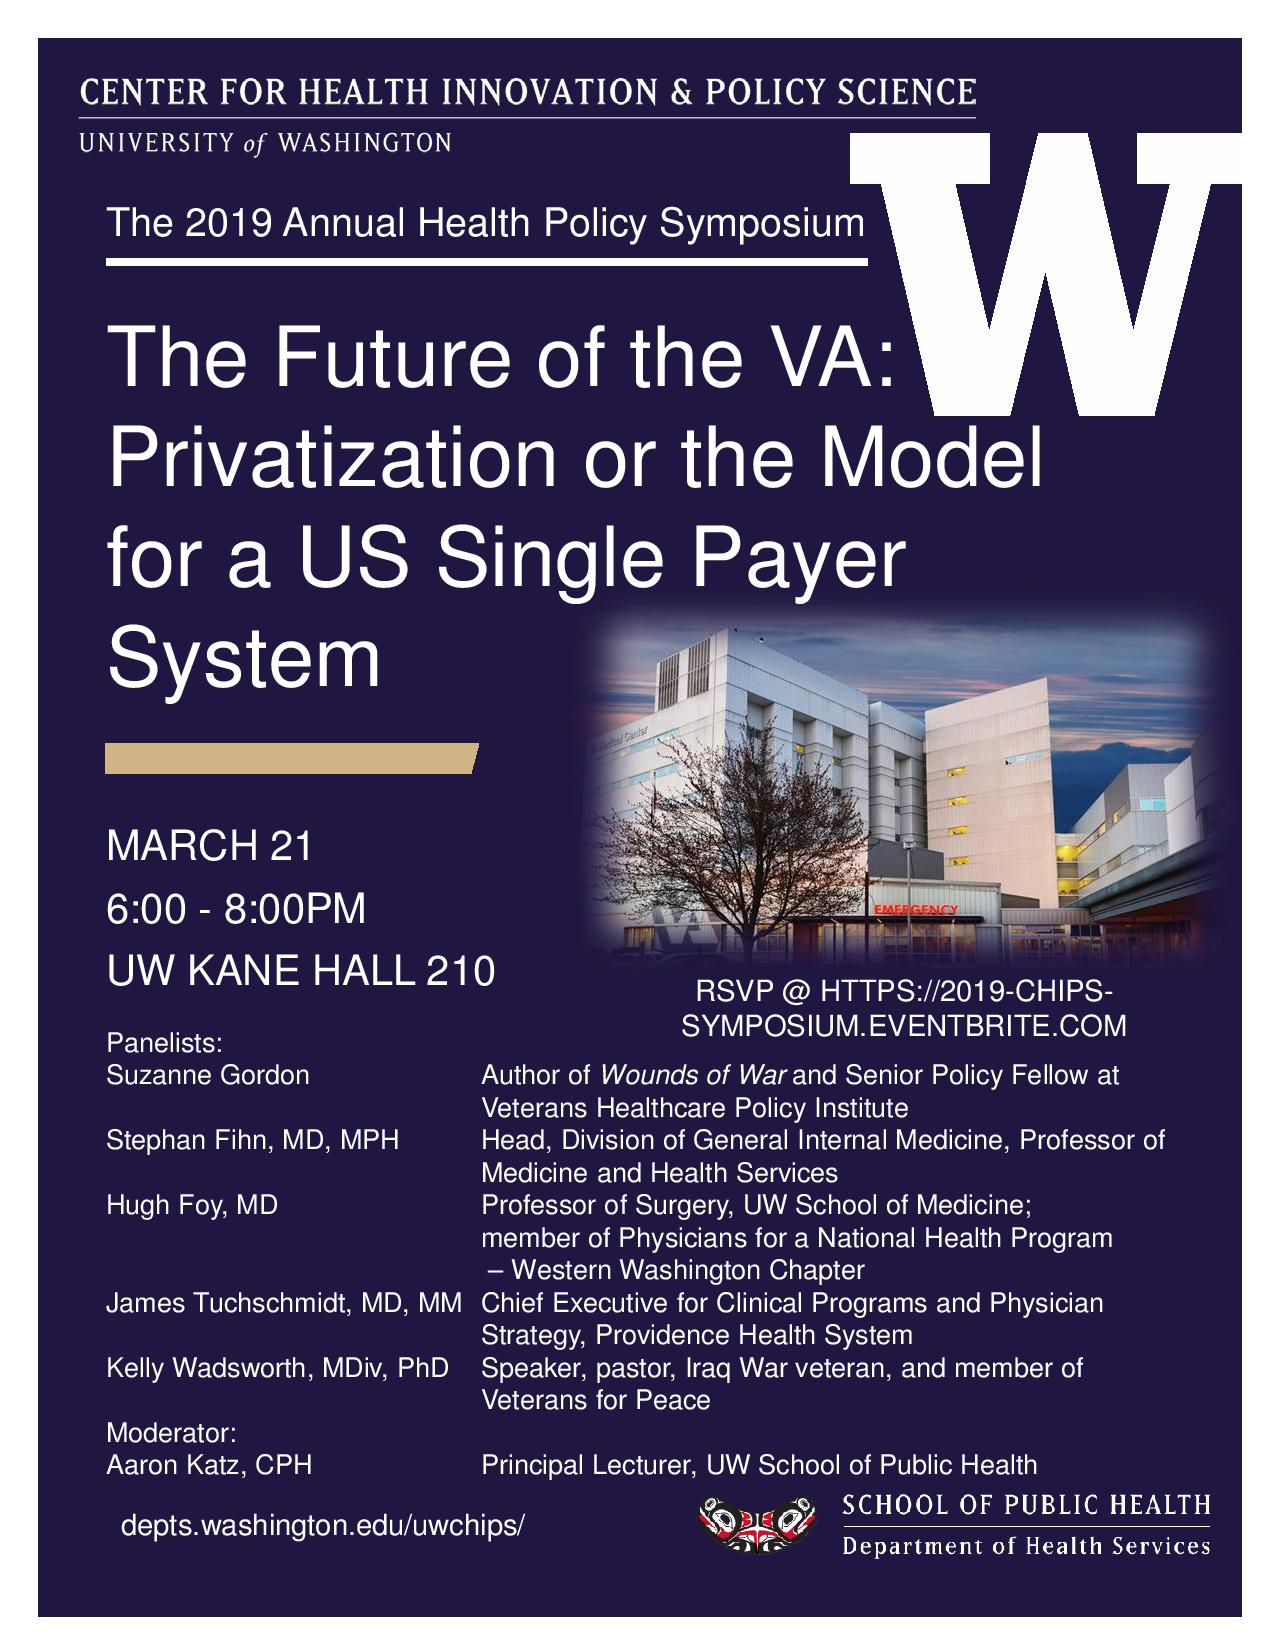 "Eventbrite    The Future of the VA: Privatization or the Model for a US Single Payer System?    About this Event   The University of Washington (UW)  Center for Health Innovation & Policy Science (CHIPS)  presents its  inaugural  Annual Health Policy Symposium, ""The Future of the VA: Privatization or the Model for a US Single Payer System?"" Please join us for a timely and thought-provoking discussion followed by a period for audience questions, moderated by UW heath policy expert,  Aaron Katz .   Tickets:   The event is open to the public, but space is limited to 240 people. Therefore, please RSVP via  Eventbrite  by clicking the green ""Register"" button and checking out your free ticket.   Panelists include:    Suzanne Gordon  - Author of  Wounds of War  and Senior Policy Fellow at Veterans Healthcare Policy Institute   Stephan Fihn, MD, MPH  - Head, Division of General Internal Medicine, Professor of Medicine and Health Services   Hugh Foy, MD  - Professor of Surgery, UW School of Medicine; member of Physicians for a National Health Program - Western Washington Chapter   James Tuchschmidt, MD, MM  - Chief Executive for Clinical Programs and Physician Strategy, Providence Health Systems   Kelly Wadsworth, MDiv, PhD  - Speaker, pastor, Iraq War Veteran, and member of Veterans for Peace   Parking and transit information:   The event takes place at the University of Washington Seattle campus in Kane Hall. The closet parking option is to use  on-campus parking  at the  Central Plaza Garage . However, there is both  free and paid street parking  within a few blocks of the venue. If you plan to use King County Metro Transit, you can use  Plan a Trip  with the venue's address, 4069 Spokane Ln, Seattle, WA 98105, otherwise popular bus lines from Downtown Seattle (70), Magnolia/Fremont (31,32), North Seattle (67, 75, 372, 541/2), Capitol Hill (43), Ballard/Wallingford (44), South Seattle (48,167), and the Eastside (271,277, 540, 541/2, 556), all have stops near the venue.   More information on our panelists:    Suzanne Gordon  is an award winning journalist and author who writes about healthcare delivery and health care systems and patient safety. Her latest book is Wounds of War: How the VA Delivers Health, Healing, and Hope to the Nation's Veterans (Cornell University Press). Her last book, The Battle for Veterans' Healthcare: Dispatches from the Front Lines of Policy Making and Patient Care, was published by Cornell University Press in May of 2017. She received the Disabled American Veterans (DAV) Special Recognition Award for her work covering veterans' healthcare. Ms. Gordon is the Senior Policy Fellow at the Veterans' Healthcare Policy Institute.   Stephan Fihn, MD, MPH  spent 36 years with the U.S. Department of Veterans Affairs, Dr. Fihn provided primary and hospital care to veterans and held a number of clinical, research and administrative positions. Early in his career, he directed one of the first primary care clinics in VA at the Seattle VA Medical Center. From 1993 to 2011, he directed the Northwest VA Health Services Research & Development Center of Excellence at the Seattle VA. His own research has addressed a broad range of topics related to strategies for improving the efficiency and quality of primary and specialty medical care and understanding the epi¬demiology of common medical problems. He also served several national roles within VA that enabled him to apply the principles and findings of health services research to health care delivery. From 2004-5 he served as Acting Chief Research and Development Officer for the Veterans Health Administration (VHA) and as Chief Quality and Performance Officer from 2007-8. From 2010 to 2016, he was Director of Analytics and Business Intelligence for VHA and was responsible for supporting high-level analytics and delivery of clinical, performance and business information throughout VHA. From 2016-17, he was Director of Clinical System Development and Evaluation and was responsible for developing integrated workflow solutions for clinical care and conducting national evaluations of major clinical initiatives.   Hugh Foy, MD  is director of the Surgical Specialties Clinic at Harborview, a UW professor of Surgery and a founding head of the UW Medicine's Wind River College. Dr. Foy has been recognized as UW Teacher of the Year by graduating medical students four times, earning the title of Teacher Superior in Perpetuity. He has also been named UW's Distinguished Teacher of the Year and as a Top Doctor by US News and World Report.   James Tuchschmidt, MD, MM  joined Providence Health & Services in Oregon in November 2015. In this role, he is responsible for the strategic development and operations of Oregon's Clinical Institutes and specialty care service lines. With his leadership, Providence's institutes provide advanced high-quality quaternary services supported by clinical and bench research. He has also been at the forefront of transforming our care models and specialty practices to support Providence's value-based strategy. Previously, Dr. Tuchschmidt served as the Acting Principal Deputy Under Secretary for Health in the Department of Veteran's Affairs. He served in this capacity during a very challenging time for VA, helping to lead the organization through crisis and implementing the Veteran's Choice legislation. He had a long and distinguished career serving America's Veterans, having served as the VA's Chief Medical Officer for the Pacific Northwest and as the Director of the Portland VA Medical Center for 11 years.   Kelly Wadsworth, MDiv, PhD  is a Seattle-based speaker and pastor. She is a Board Certified Chaplain with the Association of Professional Chaplains and an ordained Presbyterian minister with the PCUSA. She served as a military Chaplain with the Washington State Army National Guard from 2001-2011 and is a veteran of the Iraq War ('08-'09). She has worked in a variety of health care contexts including the Puget Sound VA hospital and Presbyterian Retirement Communities Northwest. Dr. Wadsworth received her PhD in Psychology and Spirituality from Saybrook University and her academic interests center on existentialism, phenomenology, and the intersection of theology and psychology. She is active with the Veterans for Peace Seattle chapter and can be reached at  kellywadsworth.squarespace.com  or  WSContemplativeChurch.org .   About our moderator:    Aaron Katz, CPH  teaches several health policy courses for MPH and MHA students, including in the Community Oriented Public Health Practice and Global Health MPH programs. He is also faculty lead for the Health Services MPH concentration in Health Systems and Policy. Aaron was director of the UW Health Policy Analysis Program from 1988 through 2003. His current research interests focus on strengthening public health systems in developing countries through enhancing policy research, development, and advocacy capacity and leadership training and development, in addition to long-standing research on changes in the safety net system and health care markets in the United States. Aaron received the Health Reform Leadership Award at the 2011 State of Reform Washington conference, the American Public Health Association's Award for Excellence in 2006, and the School of Public Health and Community Medicine's Outstanding Teaching Award in 2004."